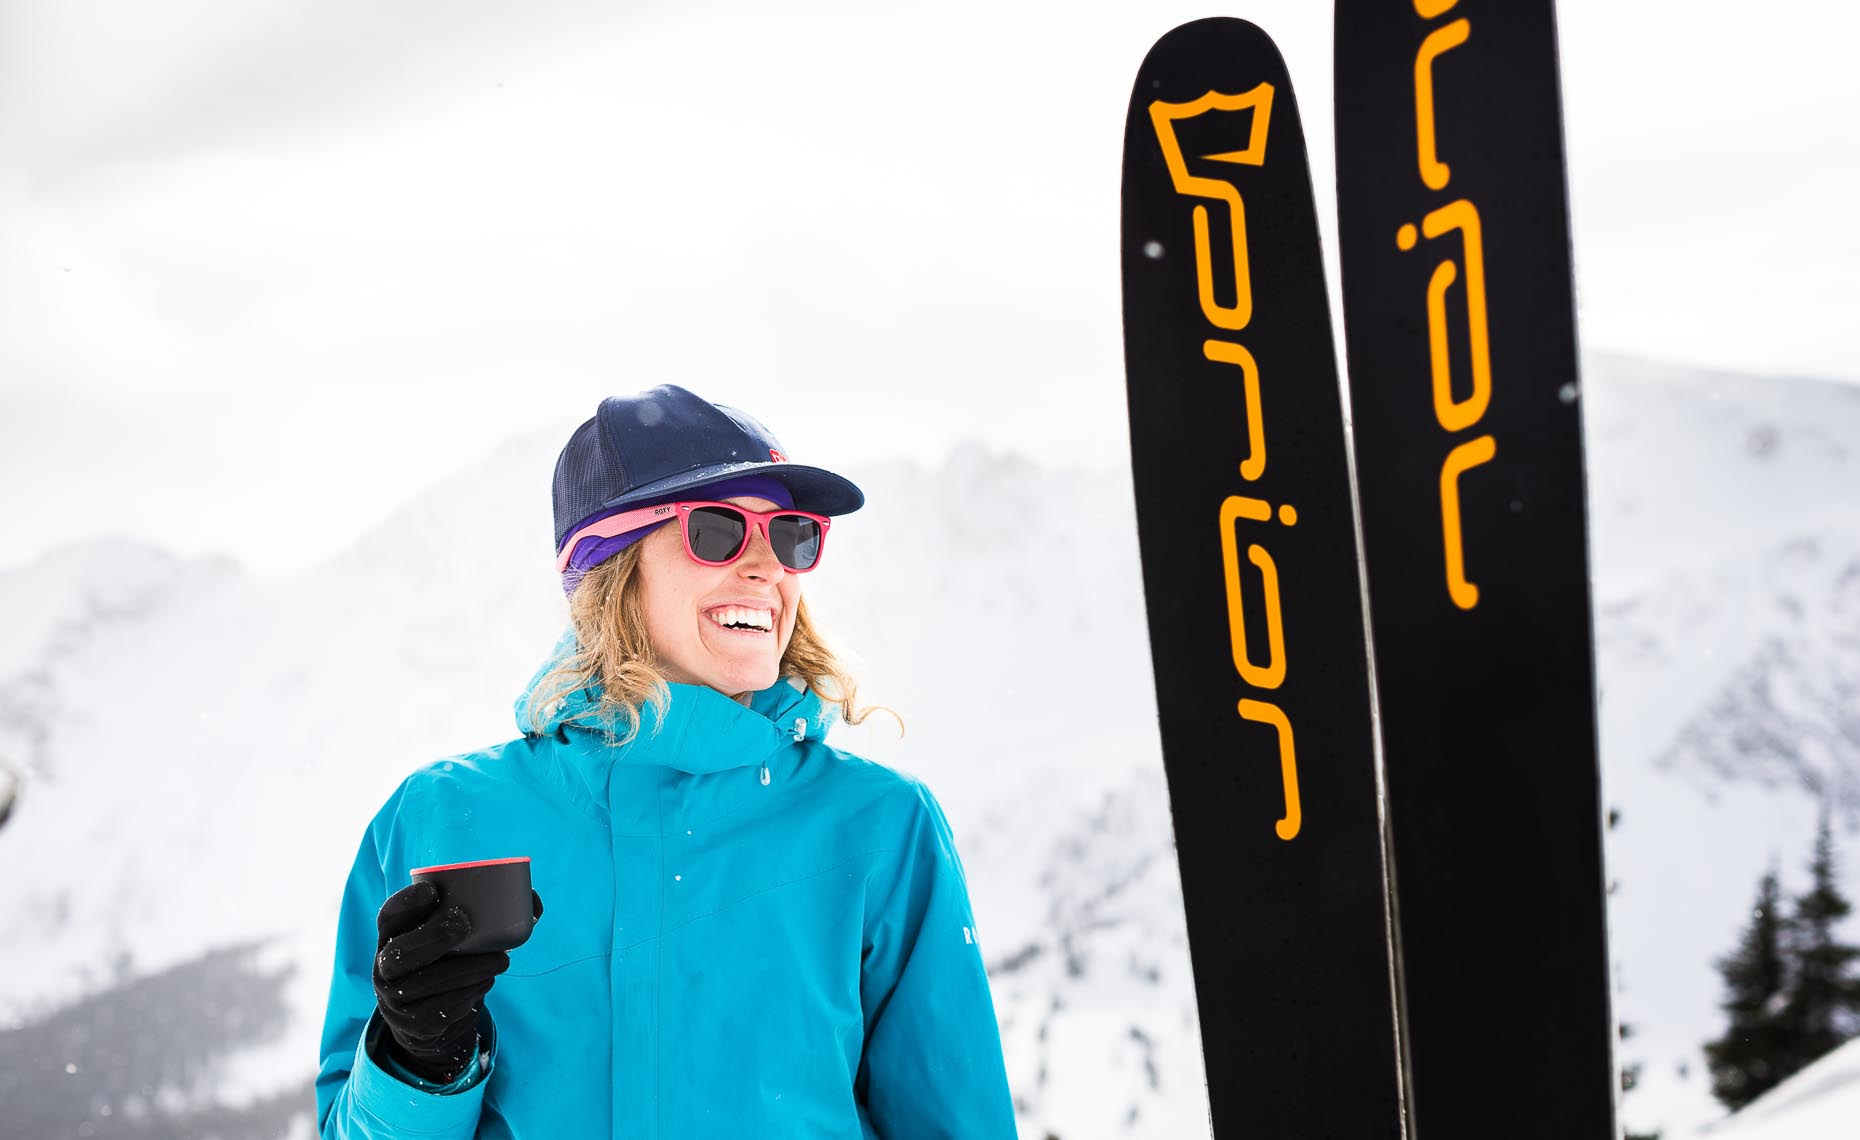 Whistler ski photographer shoots lifestyle and ski product photography